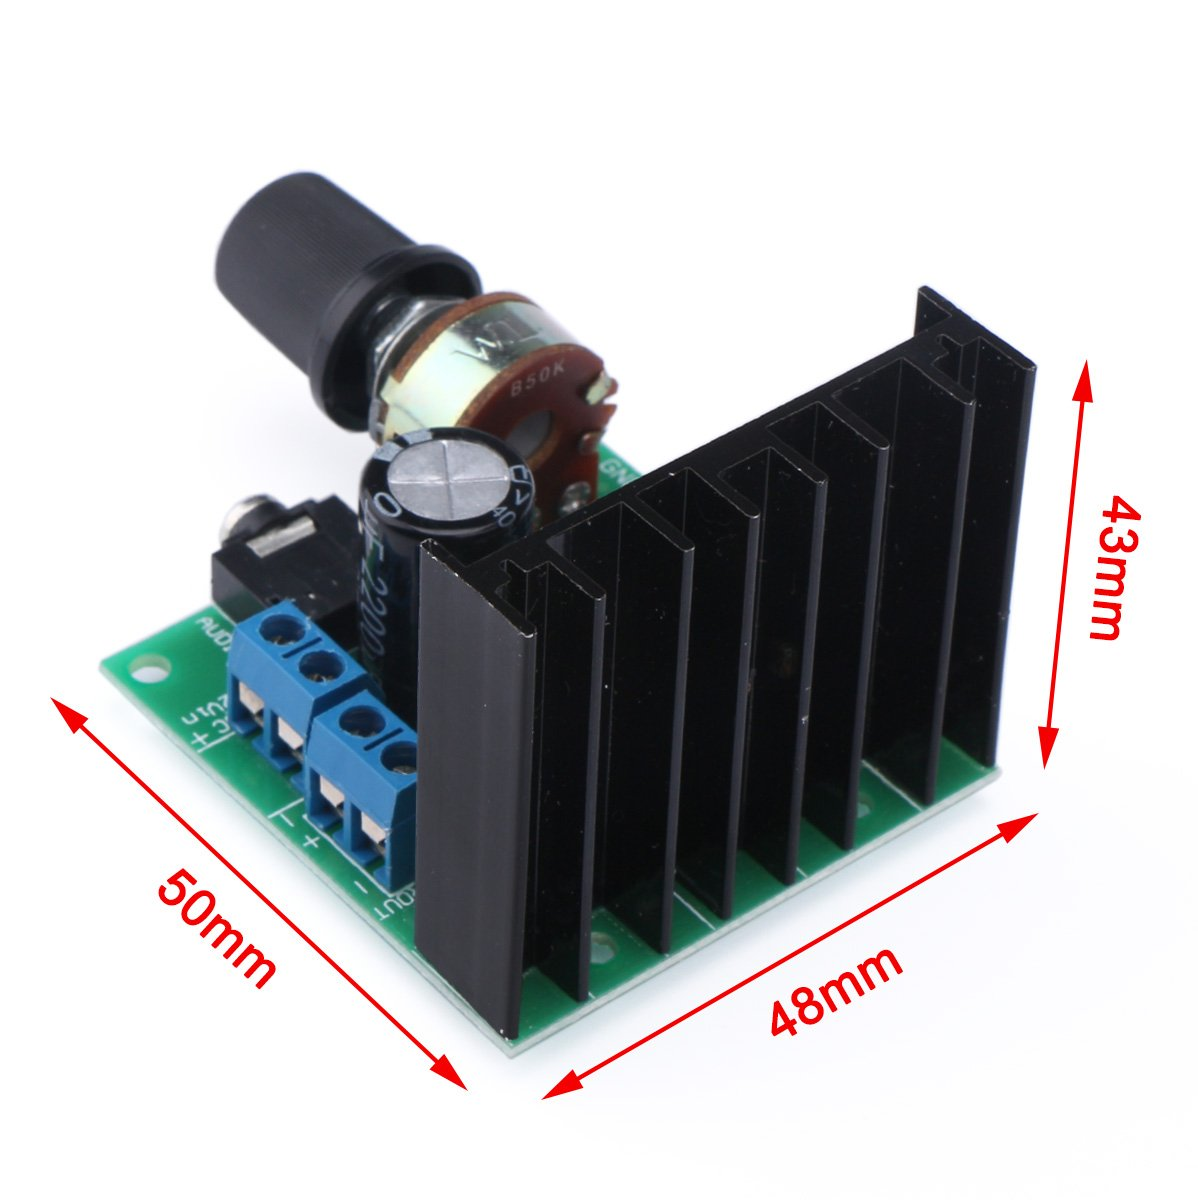 Drok Tda7297 15w Audio Power Amplifier Module Ac Dc Audioamp Board The Features A Lm386 9 18v 20 Dual Channel Stereo Amp Diy Sound System Component Electronics